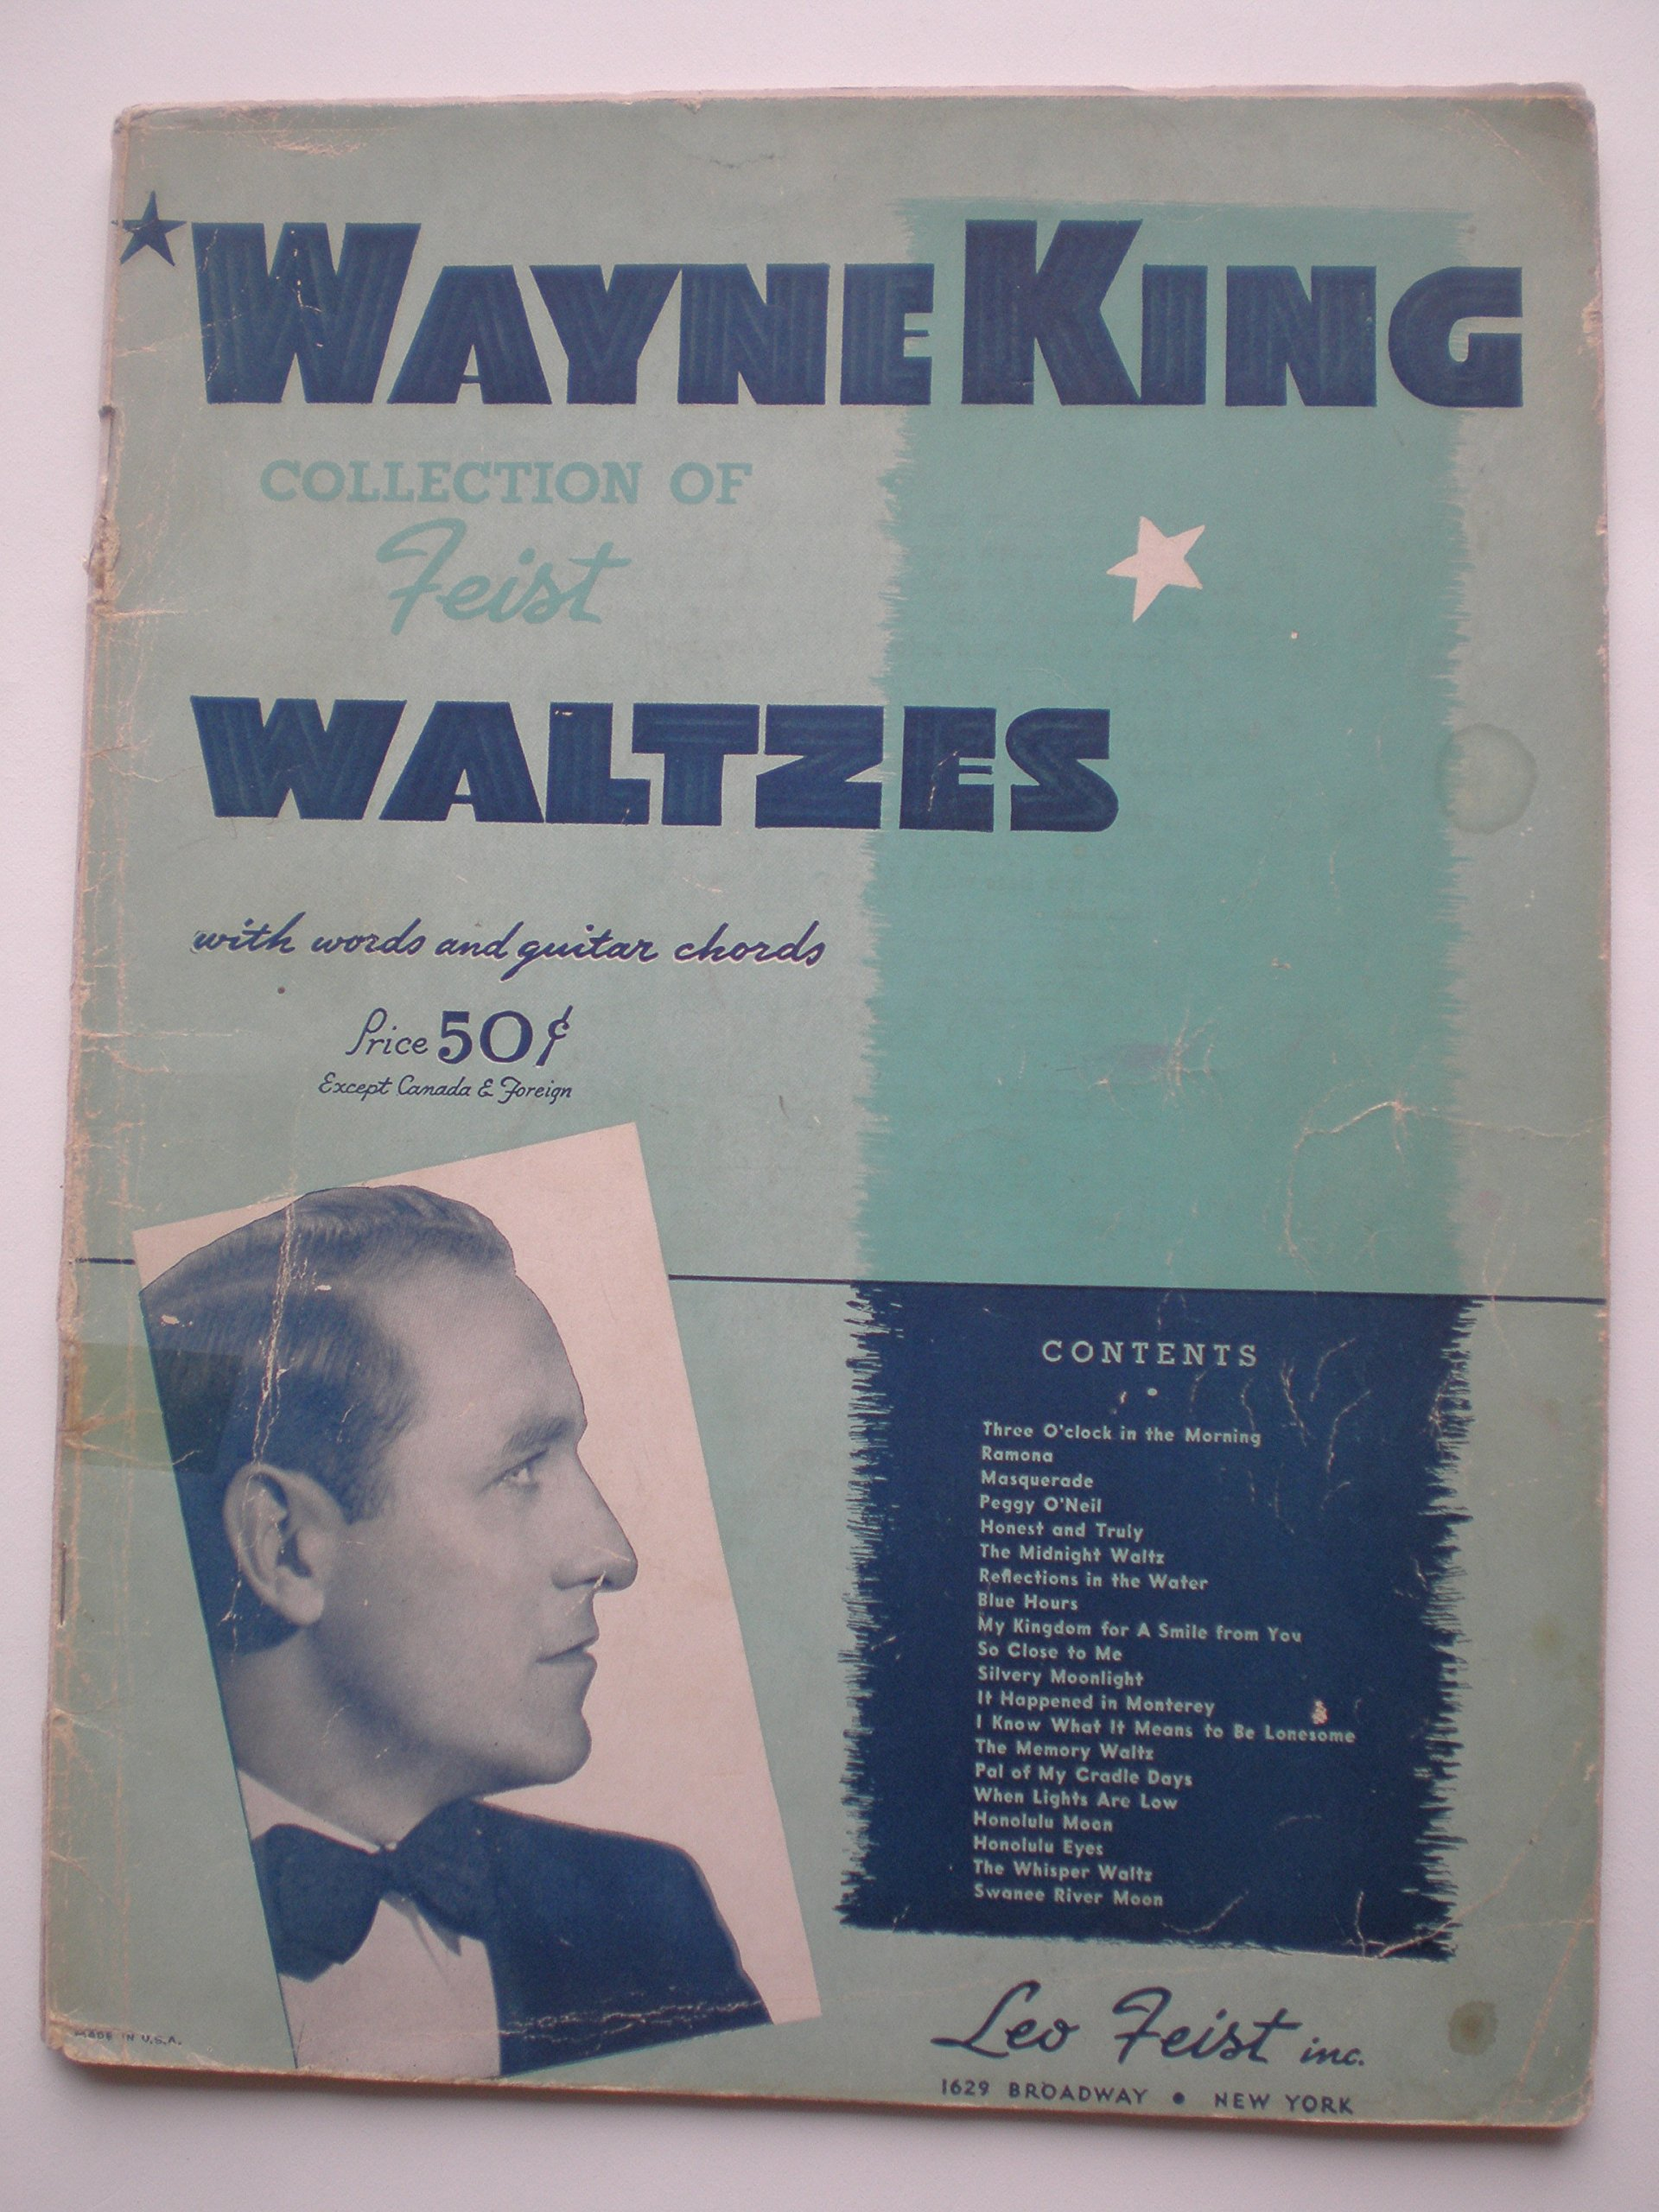 Wayne King Collection Of Feist Waltzes With Words And Guitar Chords